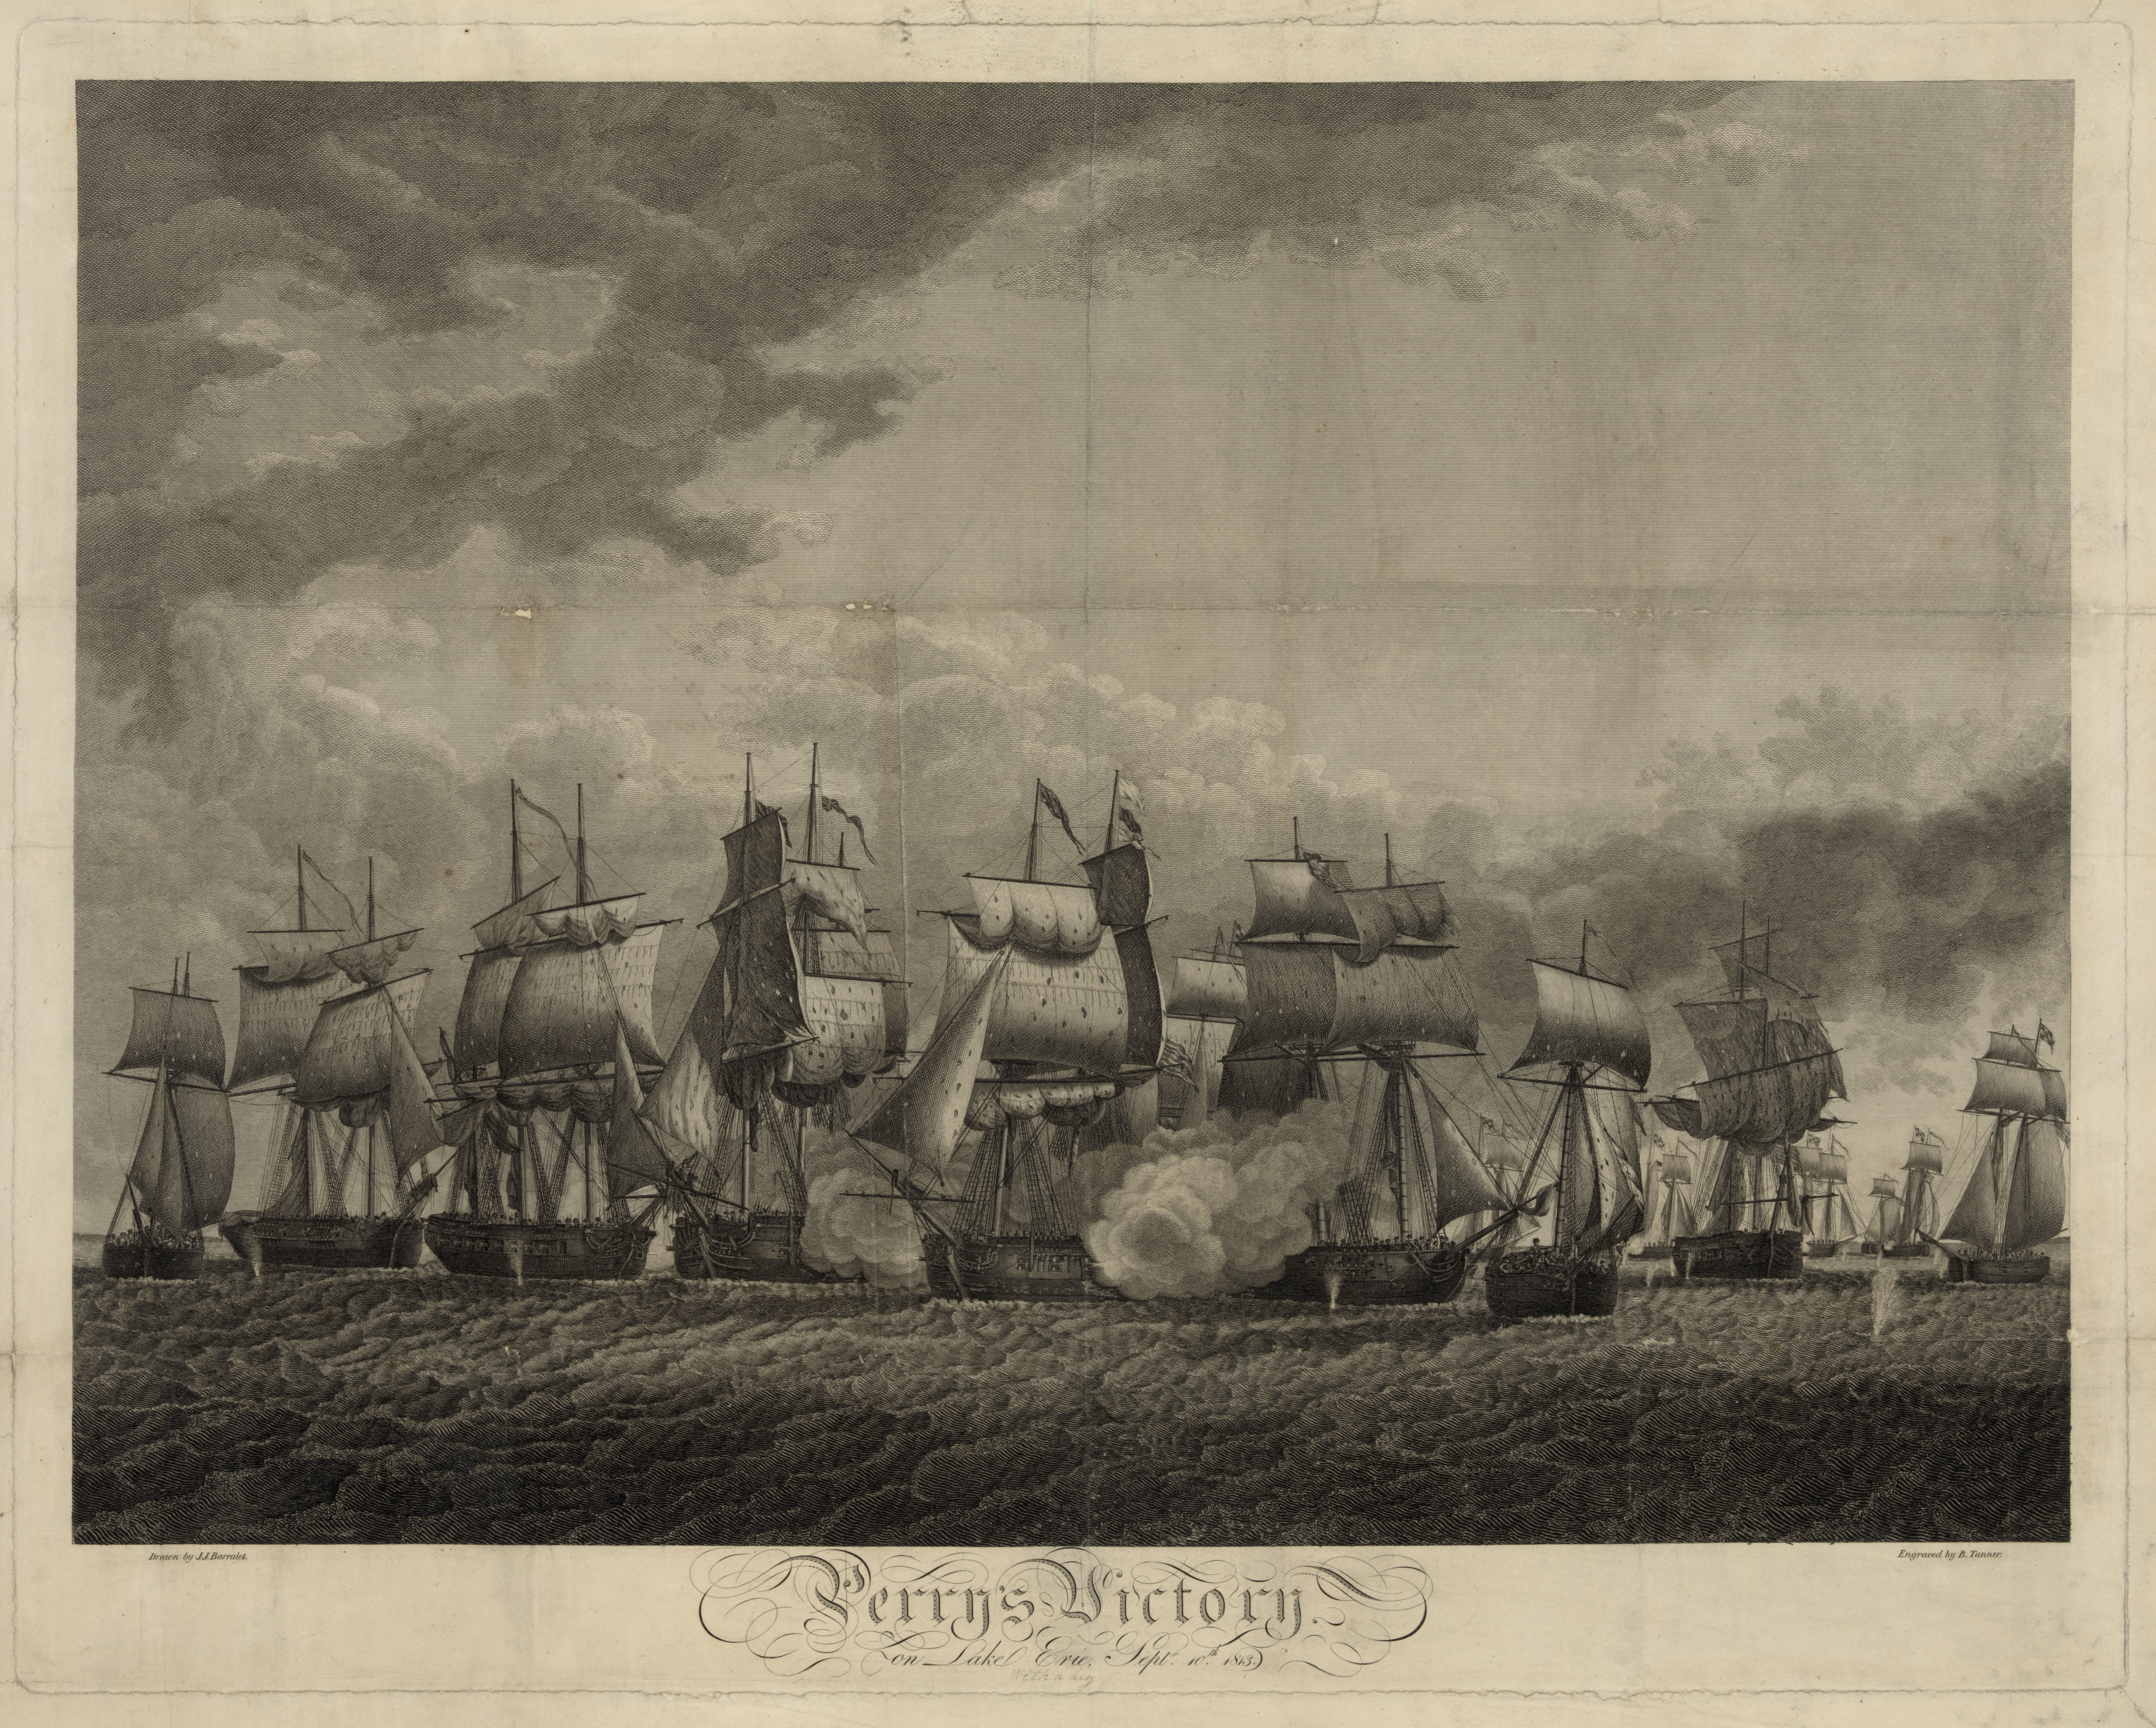 Engraving of Perry's Victory at the Battle of Lake Erie